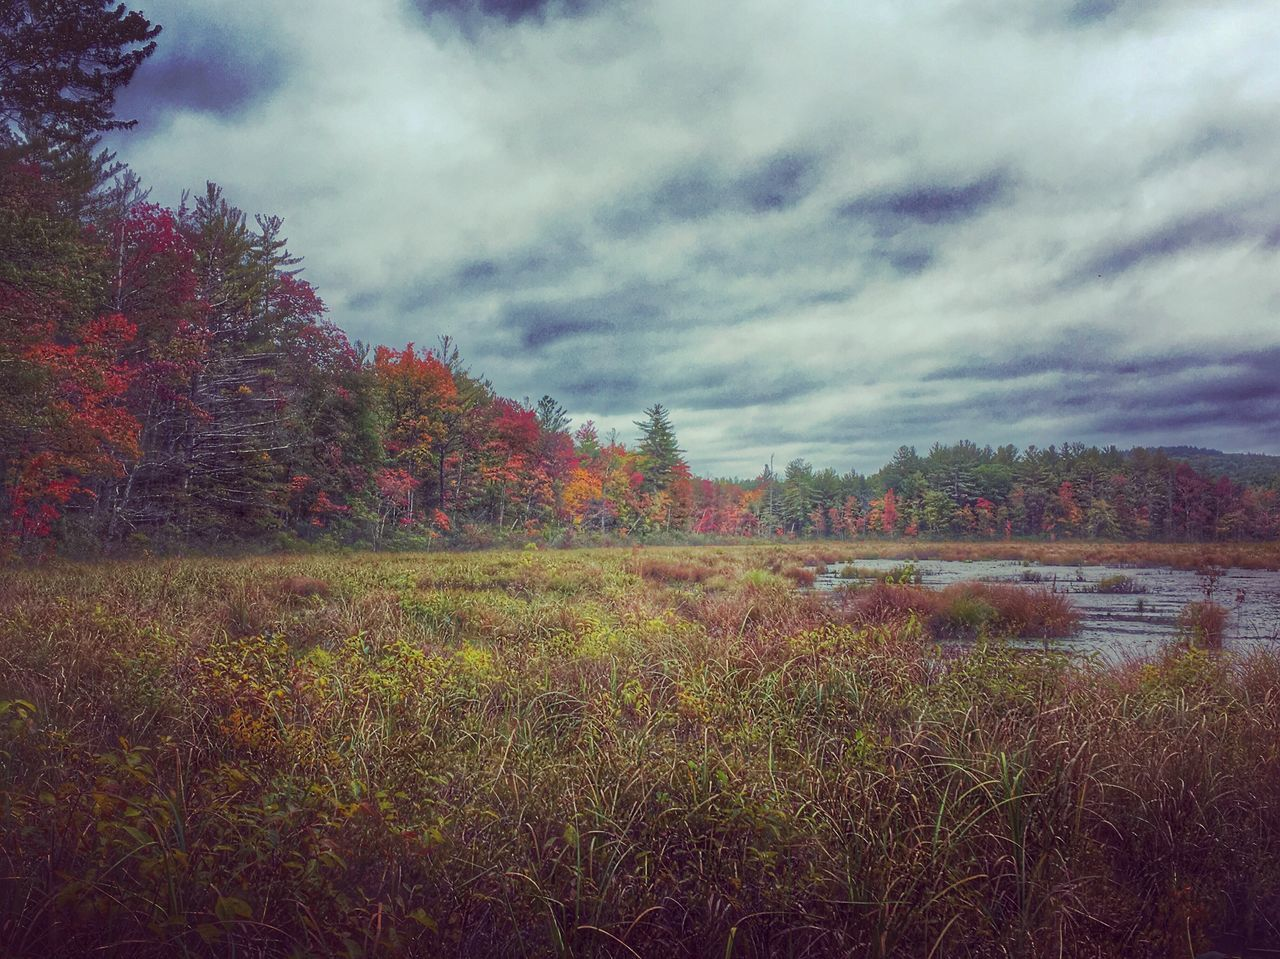 Swamp Life Newengland Newhampshire Gooutside Swamp Photos Morningmeditation Autumn Autumn Colors AutumnInNH